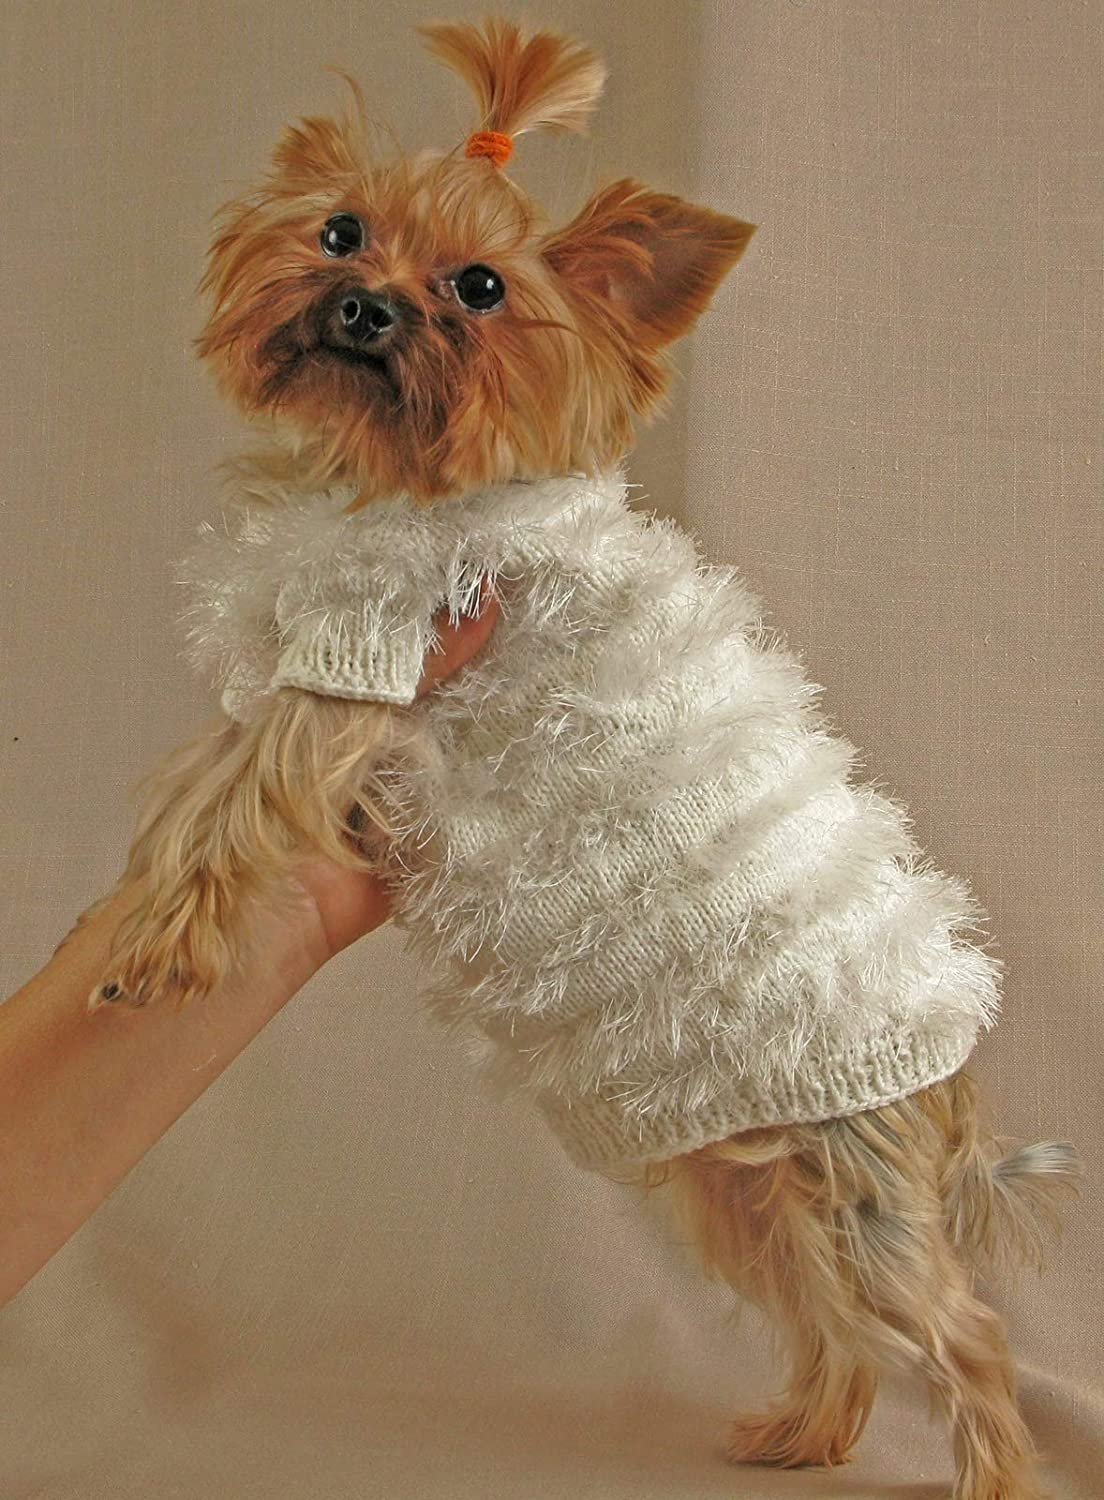 Amazon Com Pet Clothes Dog Knit Sweater Dog Clothing Puppy Sweater Yorkshire Terrier Clothes Coat Pet Jumper Puppy Xs Size Outfit Small Handmade